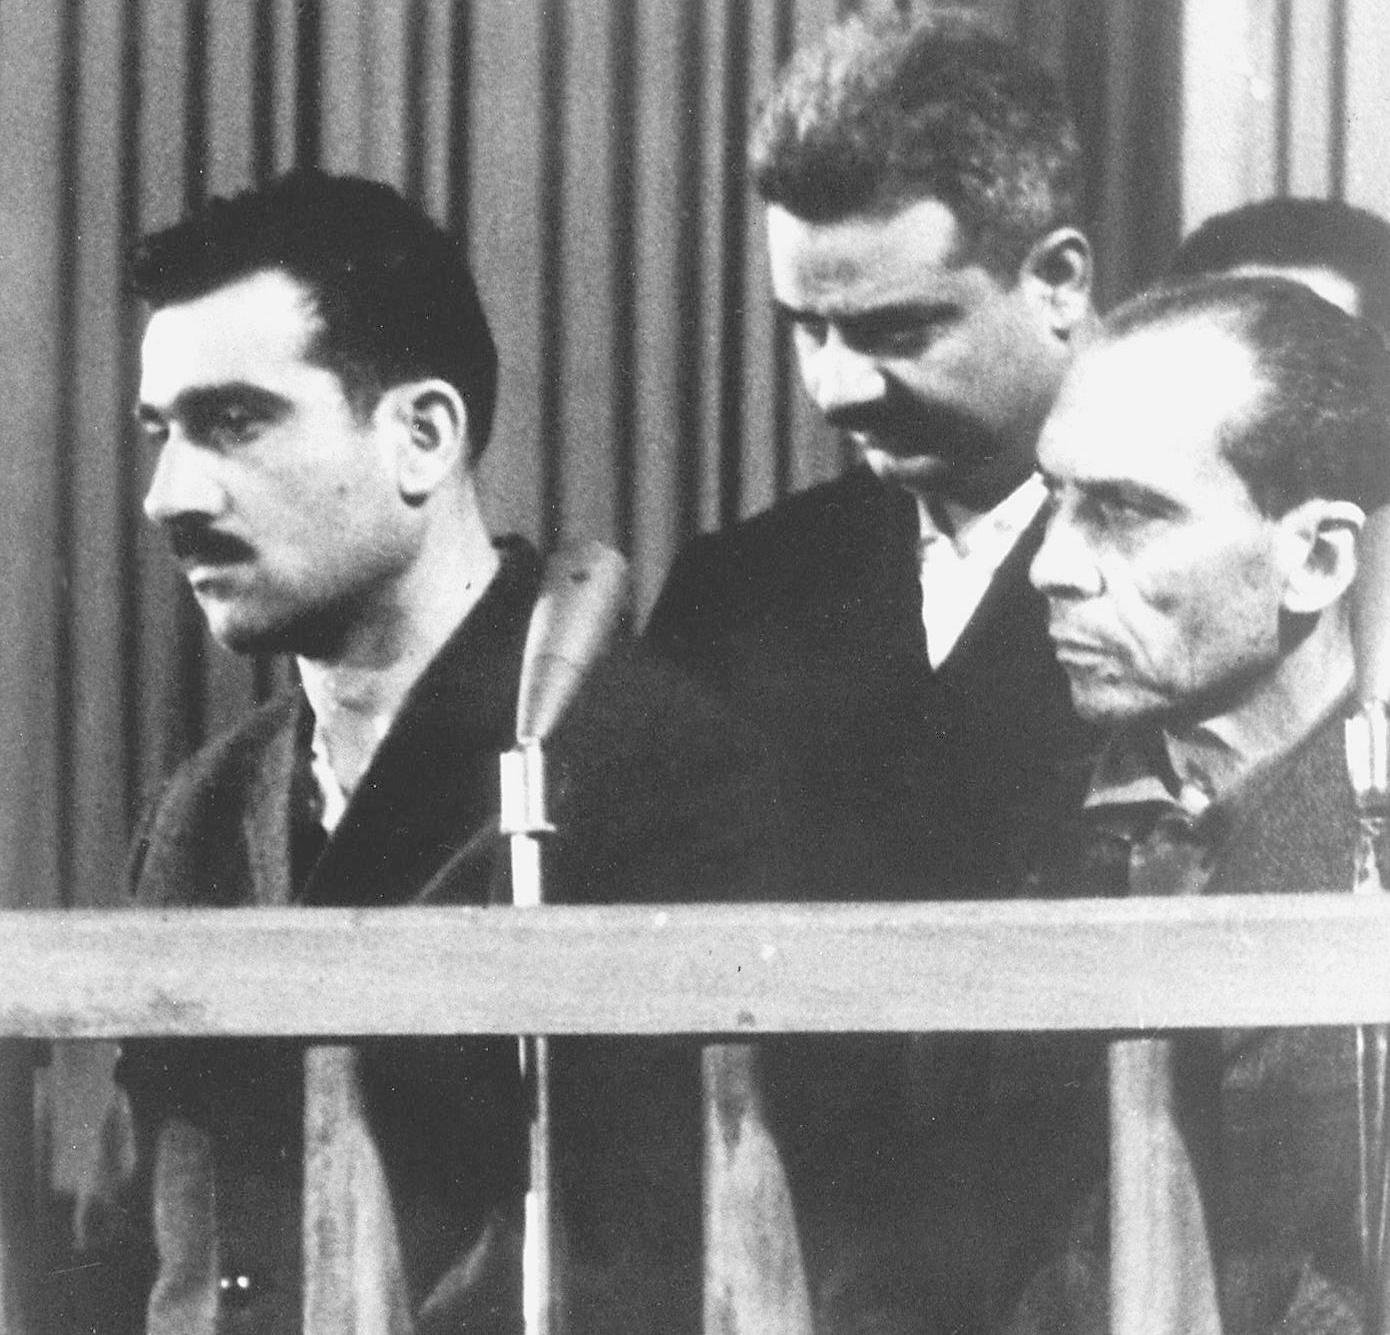 Israeli spy Eli Cohen, left, and two unidentified co-defendants, during their trial in Damascus, ten days before his execution, May 9, 1965.